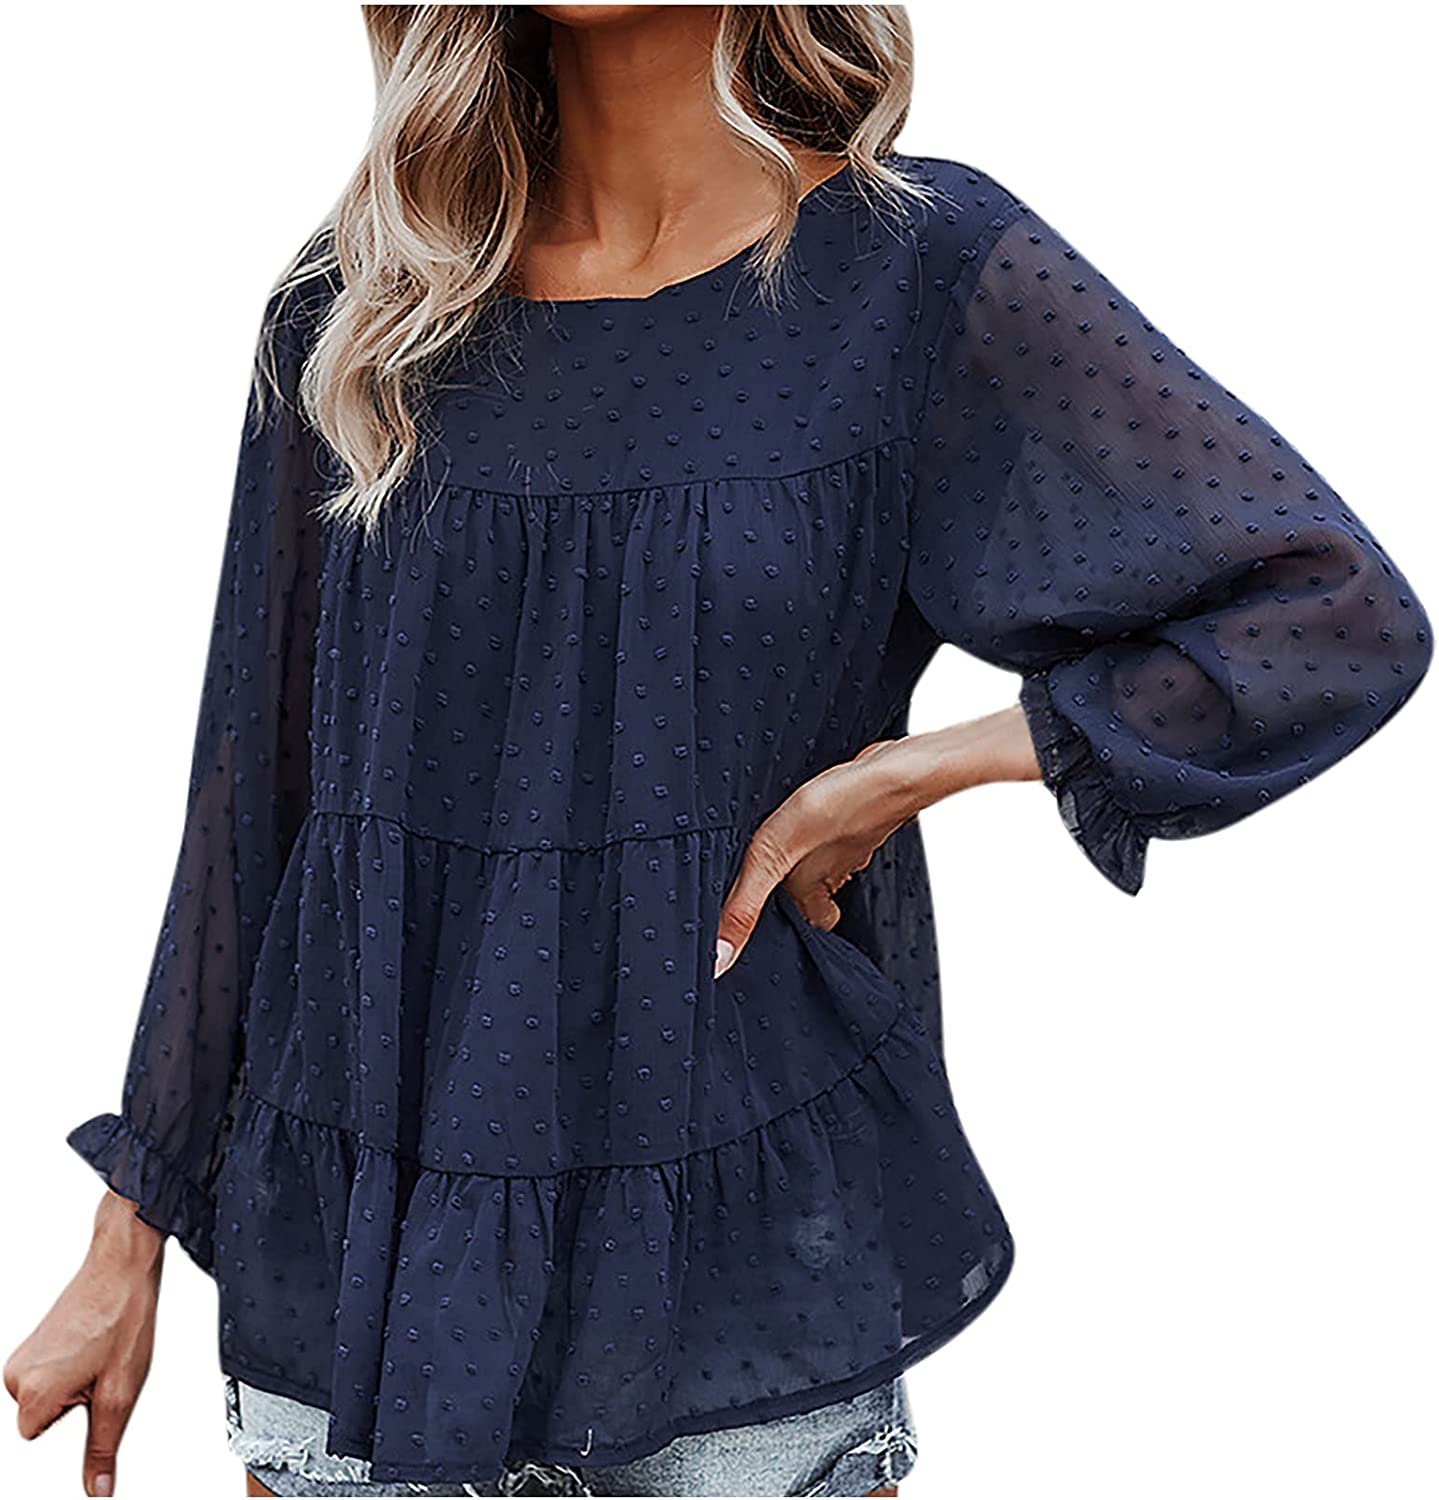 Women's Fashion Summer Dress Shirt Casual Loose Solid Color O-Neck Long Sleeve Splicing Blouse Tops